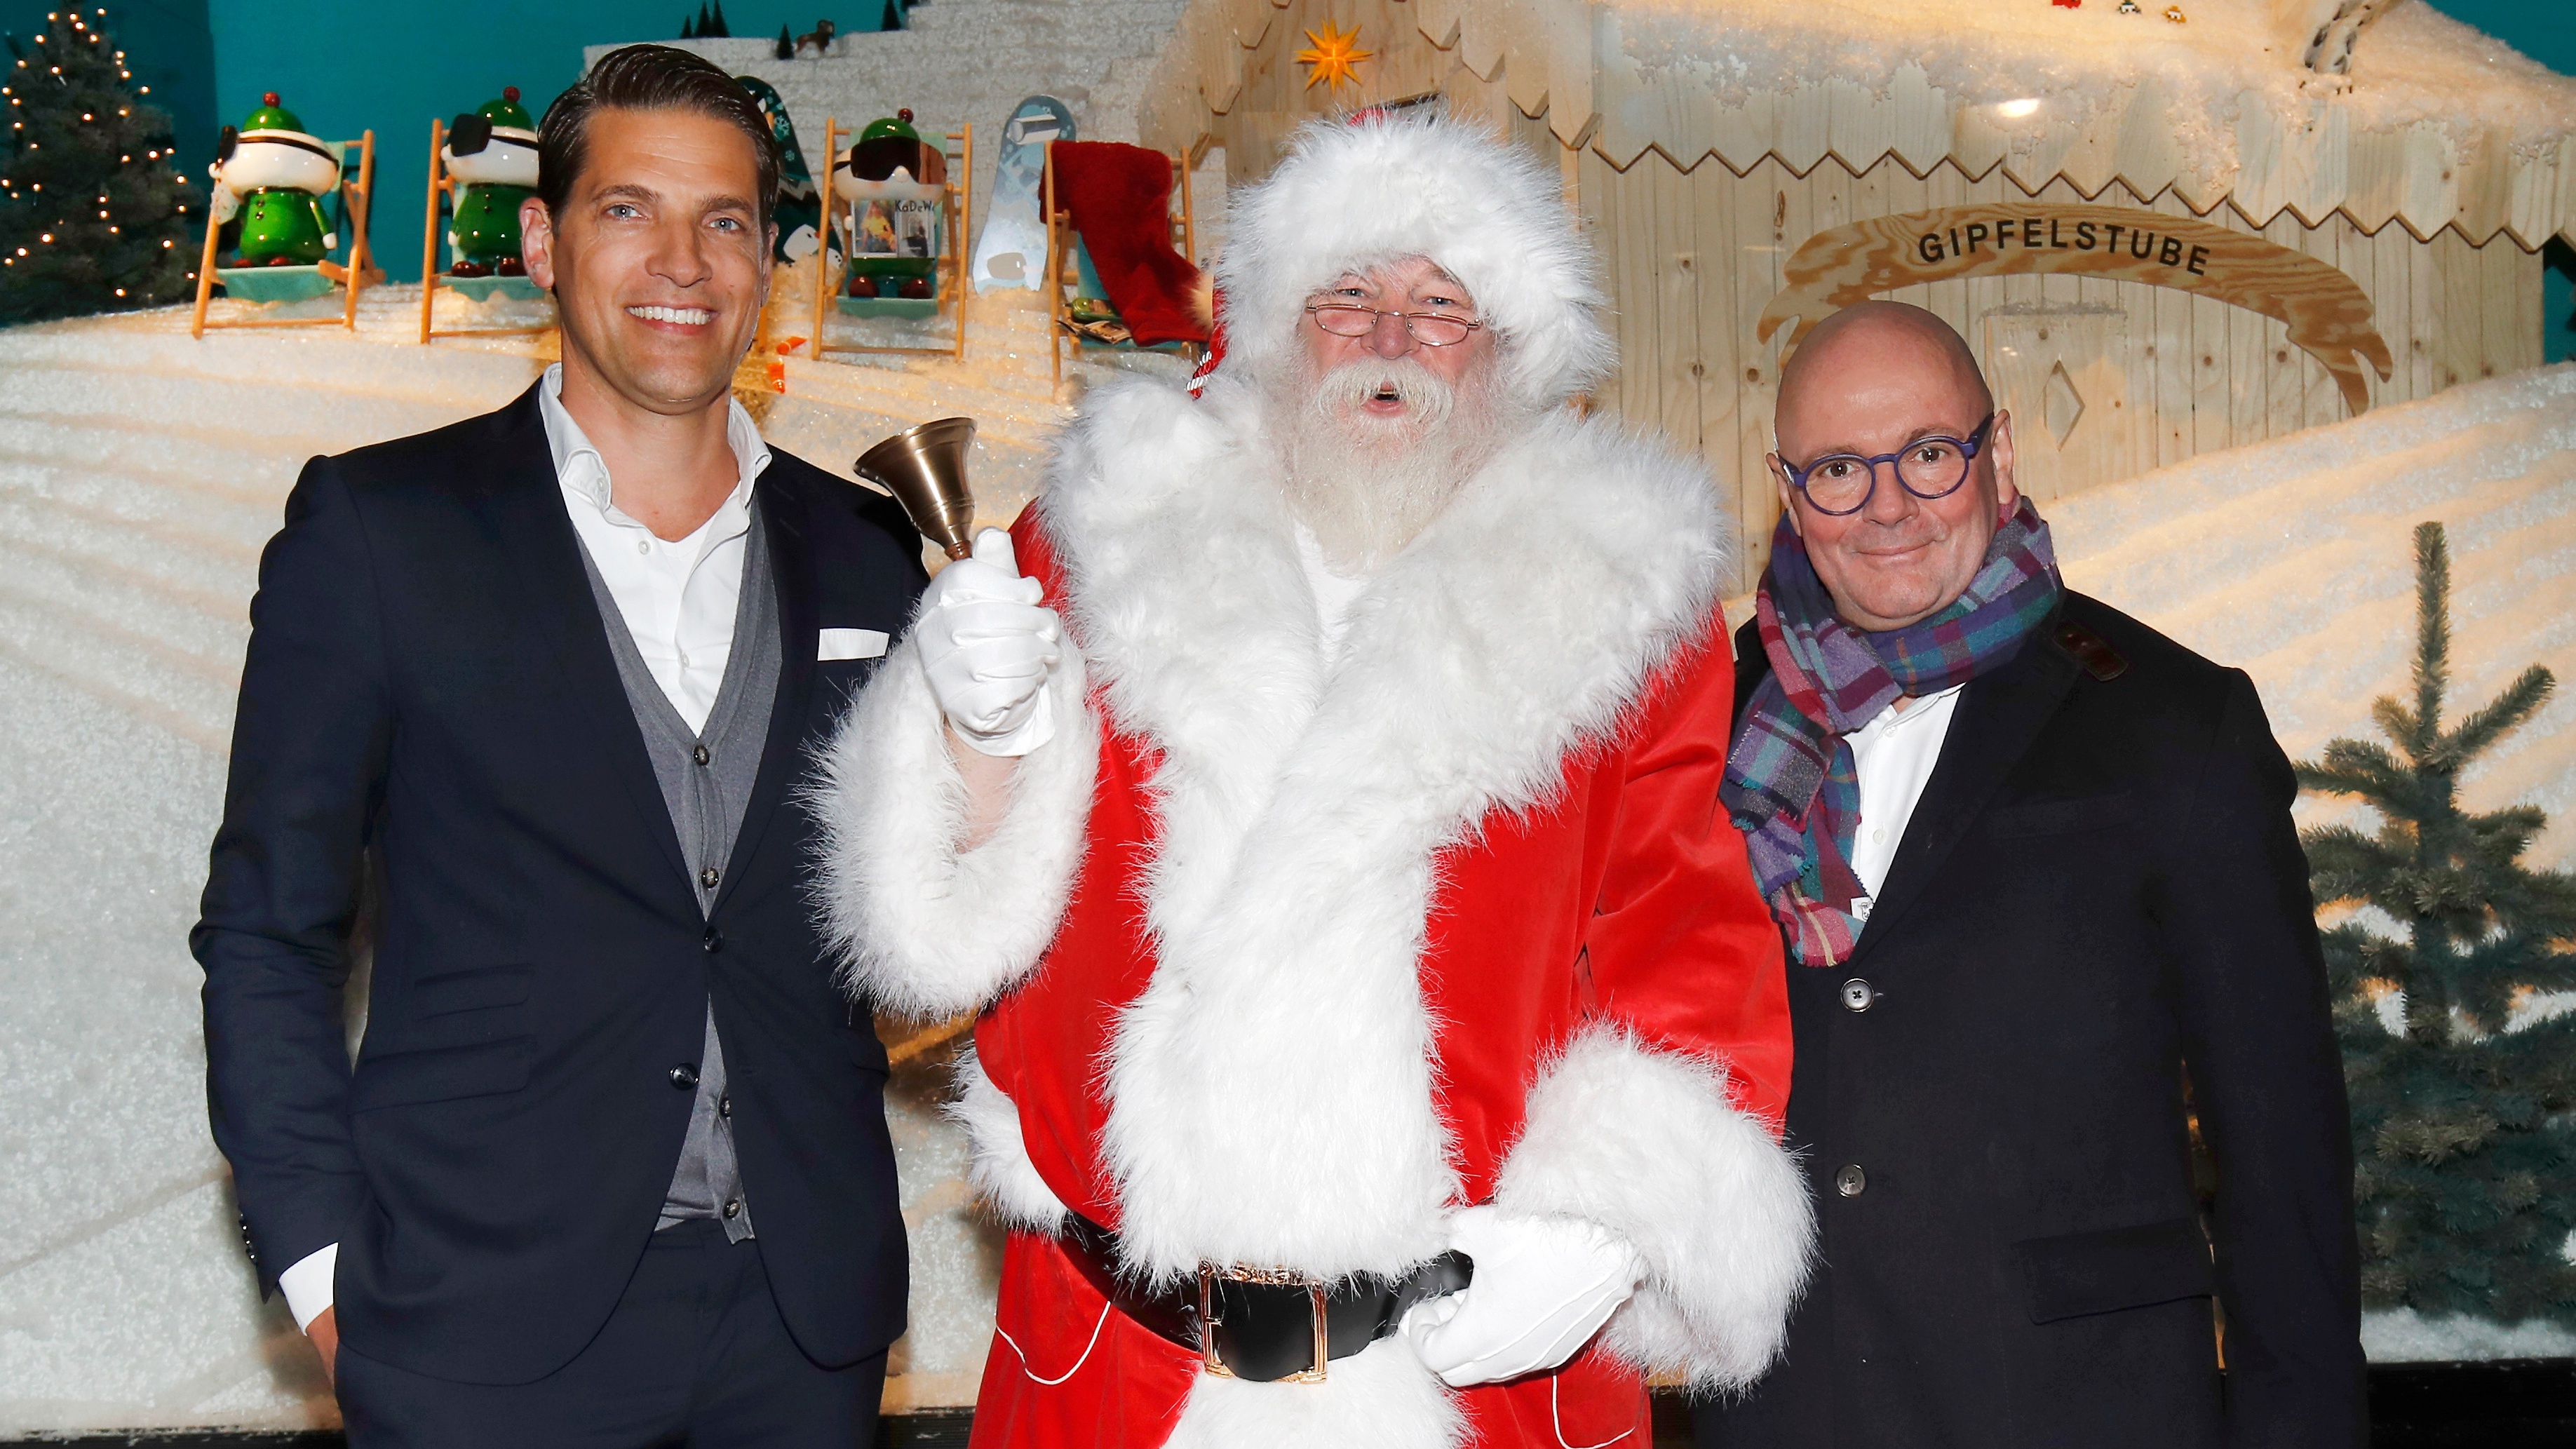 BERLIN, GERMANY - NOVEMBER 14: Managing Director KaDeWe Nico Heinemann, Santa Claus and CEO The KaDeWe Group Andre Maeder during the KaDeWe Berlin Celebrates Christmas Gallery Opening at KaDeWe on November 14, 2017 in Berlin, Germany. (Photo by Franziska Krug/Getty Images for KaDeWe)